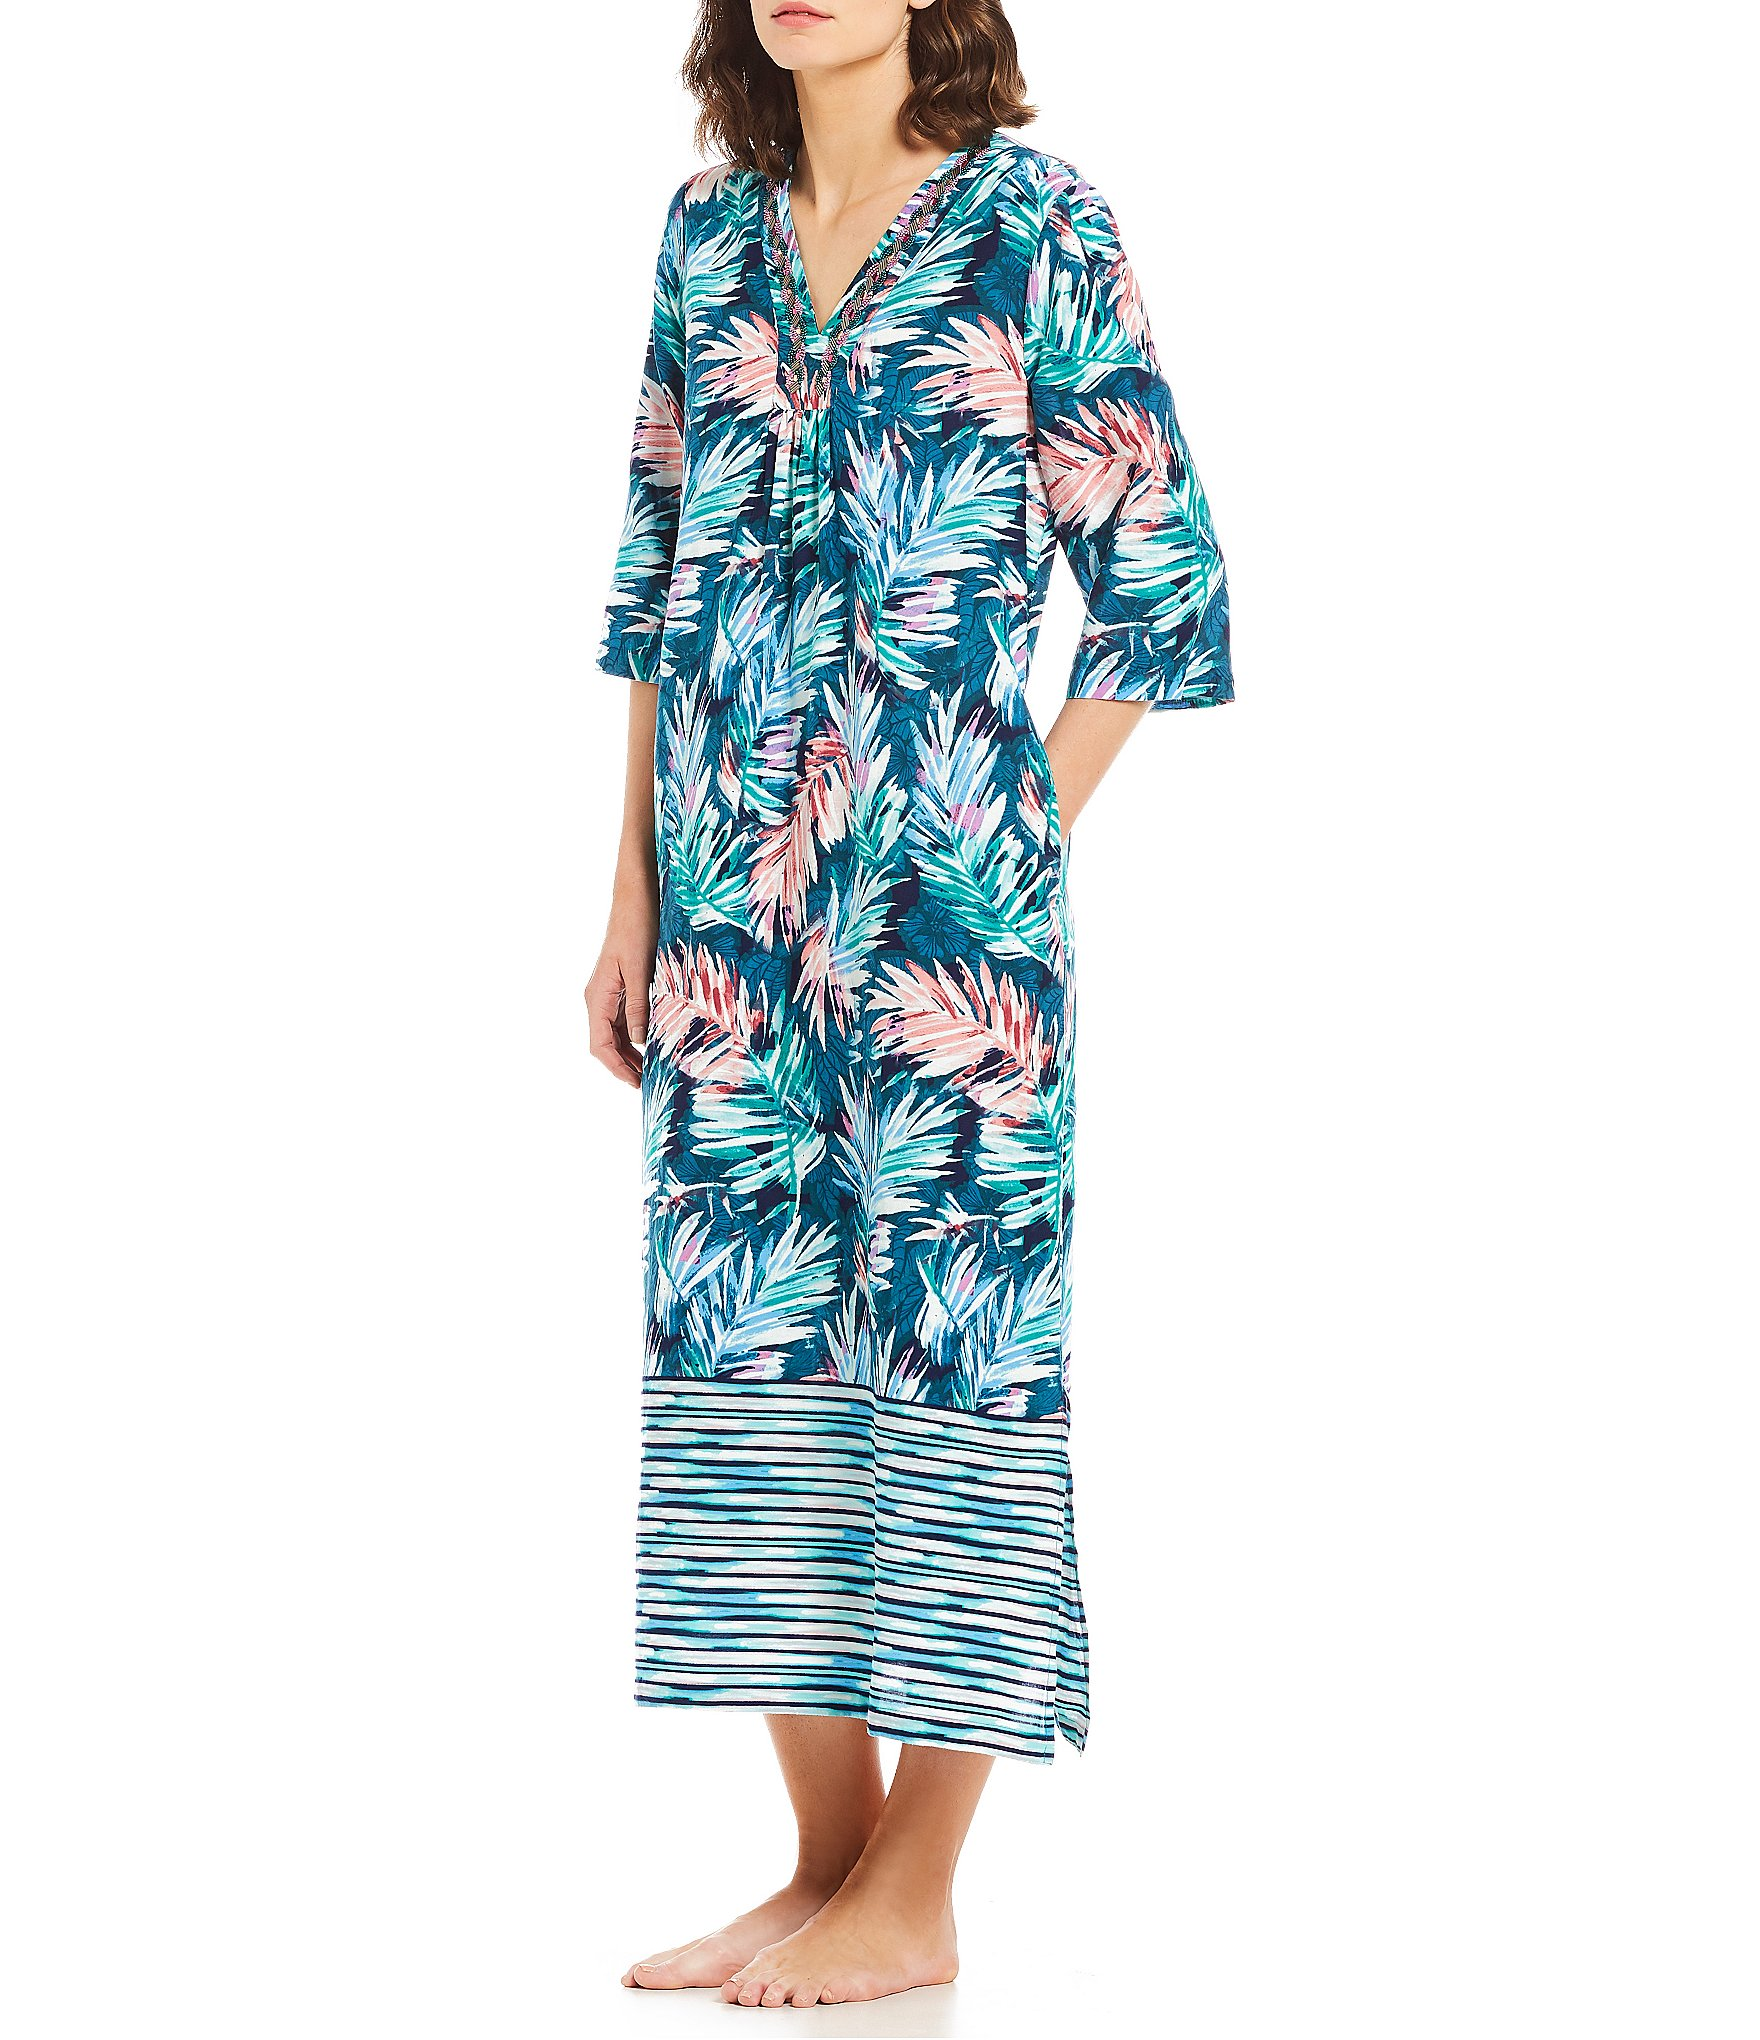 Patio Dresses & Caftans| Dillards